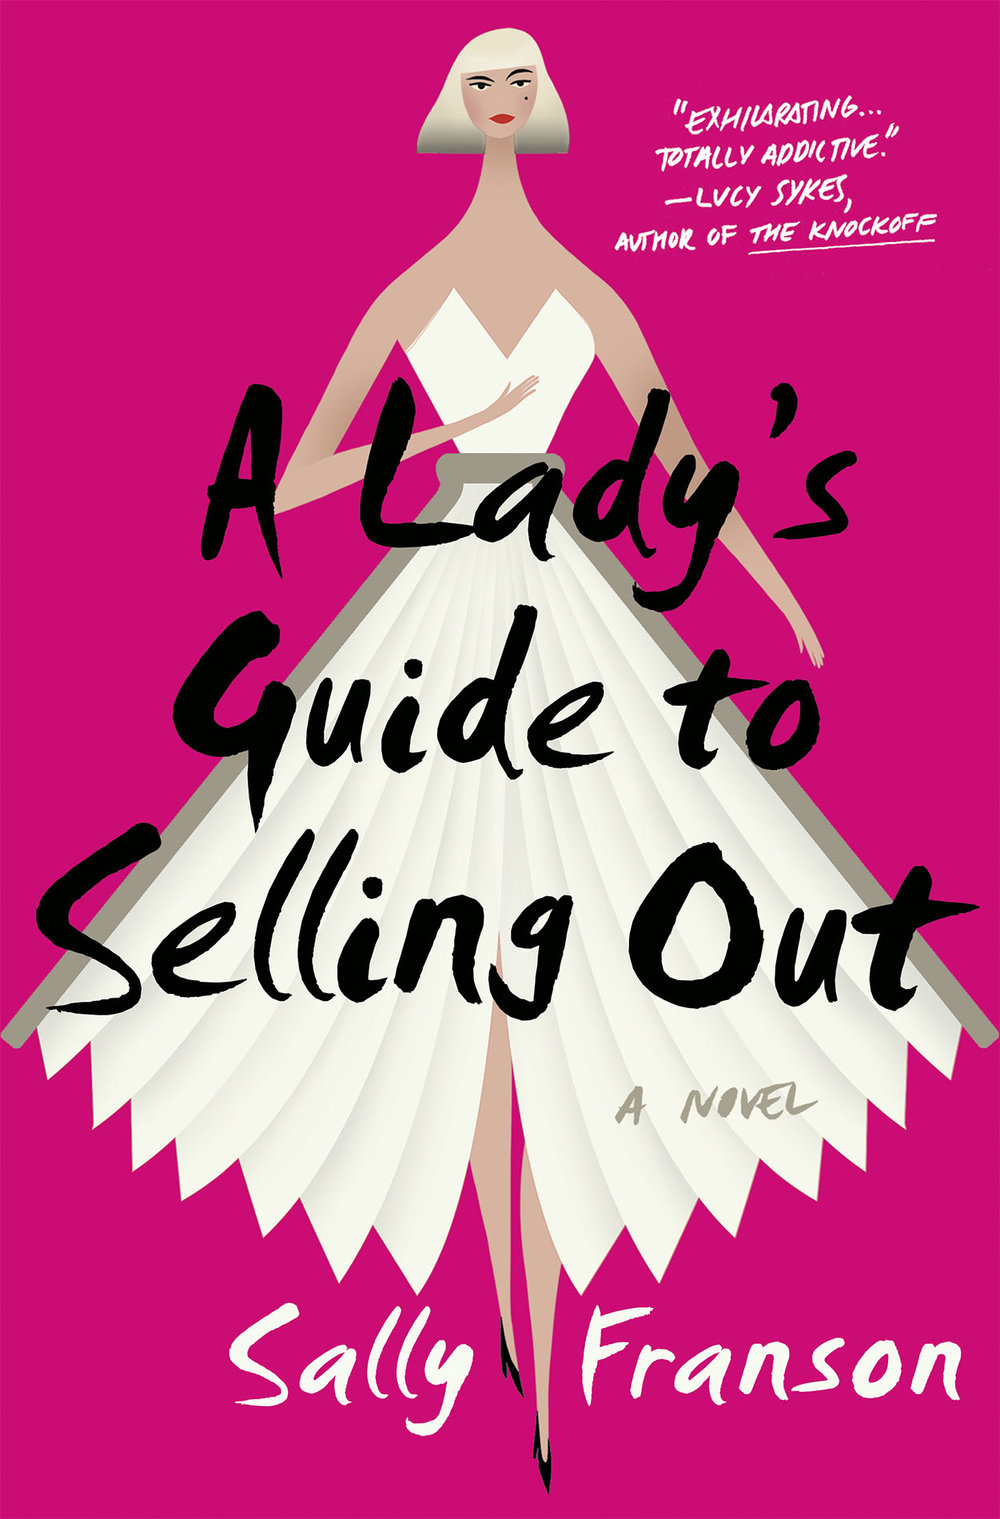 A Lady's Guide to Selling Out, a novel by Sally Franson.